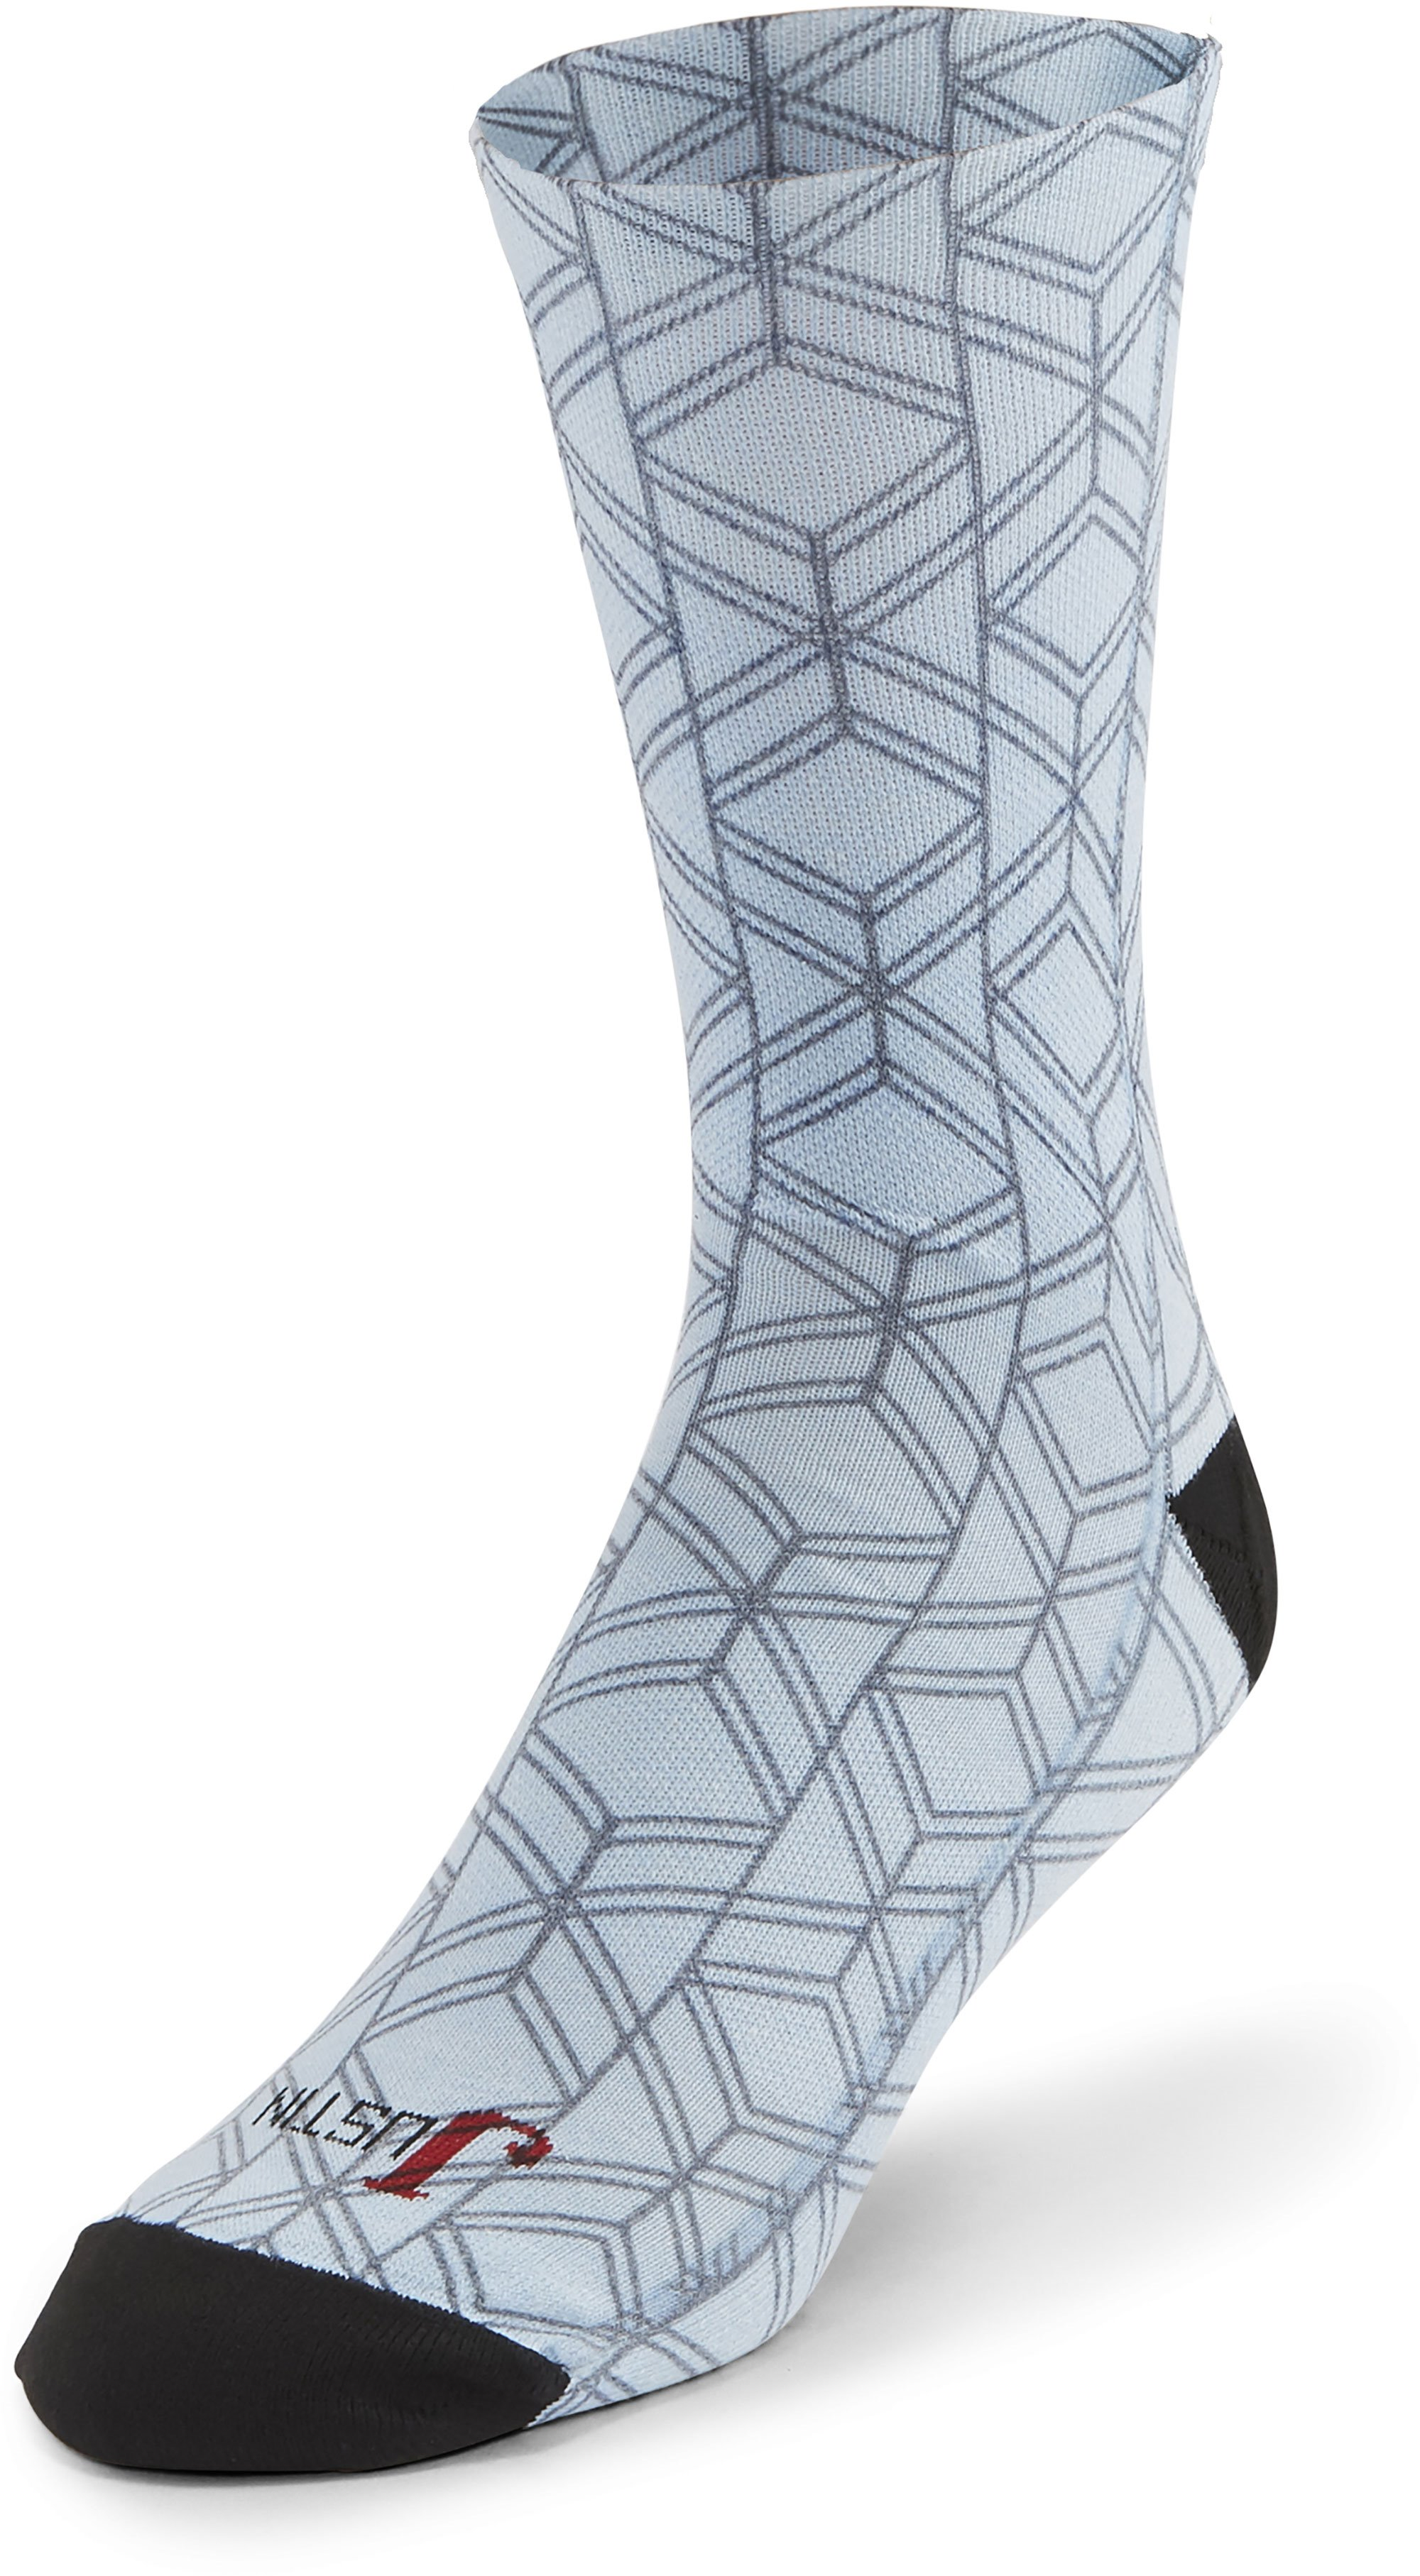 Product Image for style SOX9490J